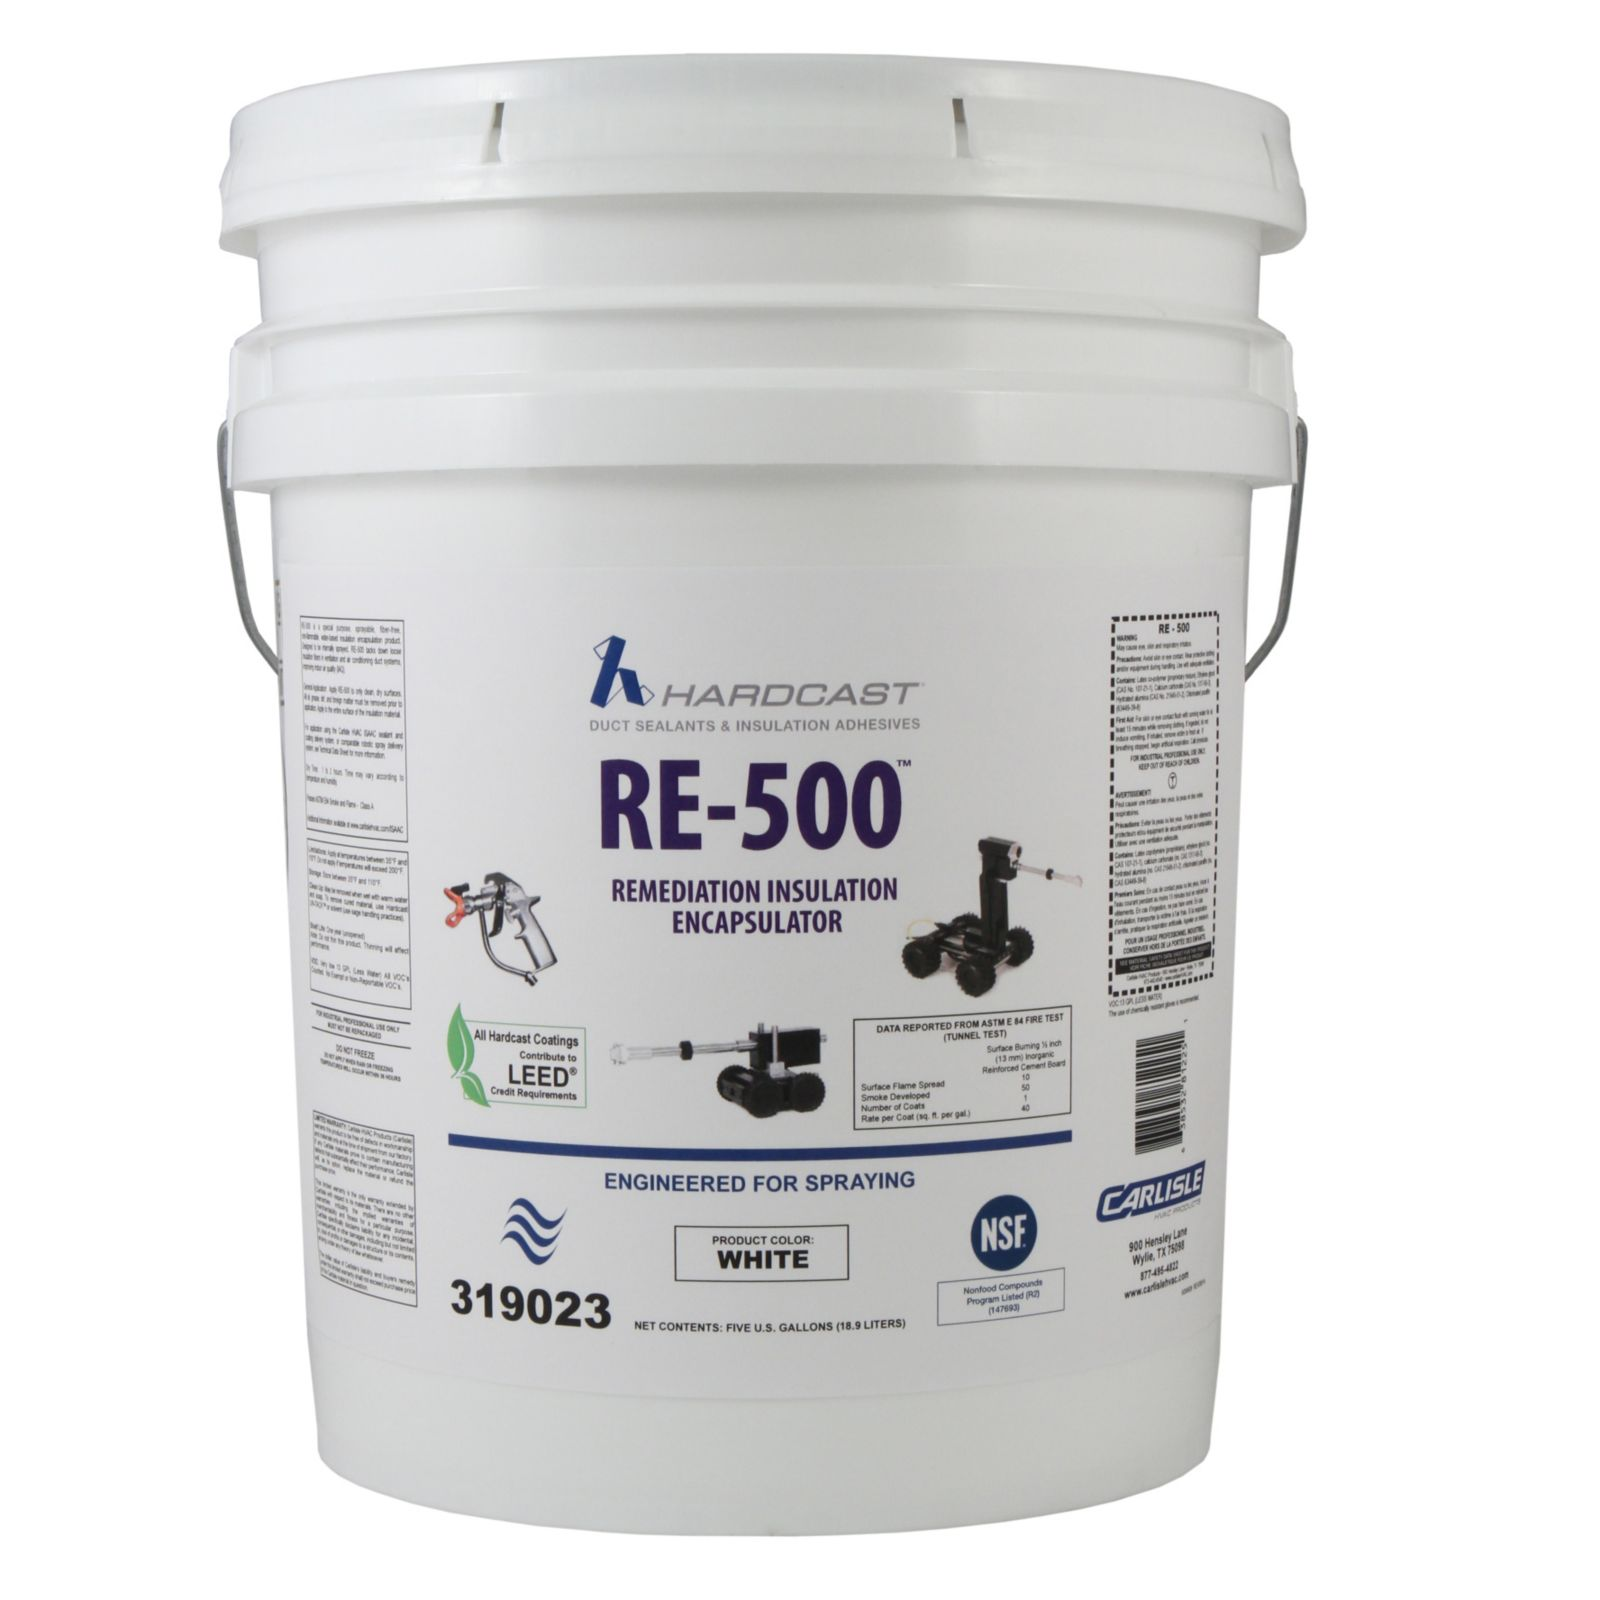 Hardcast/Carlisle 319023 - Robotic Insulation Coating, White, 5 Gallon Pail